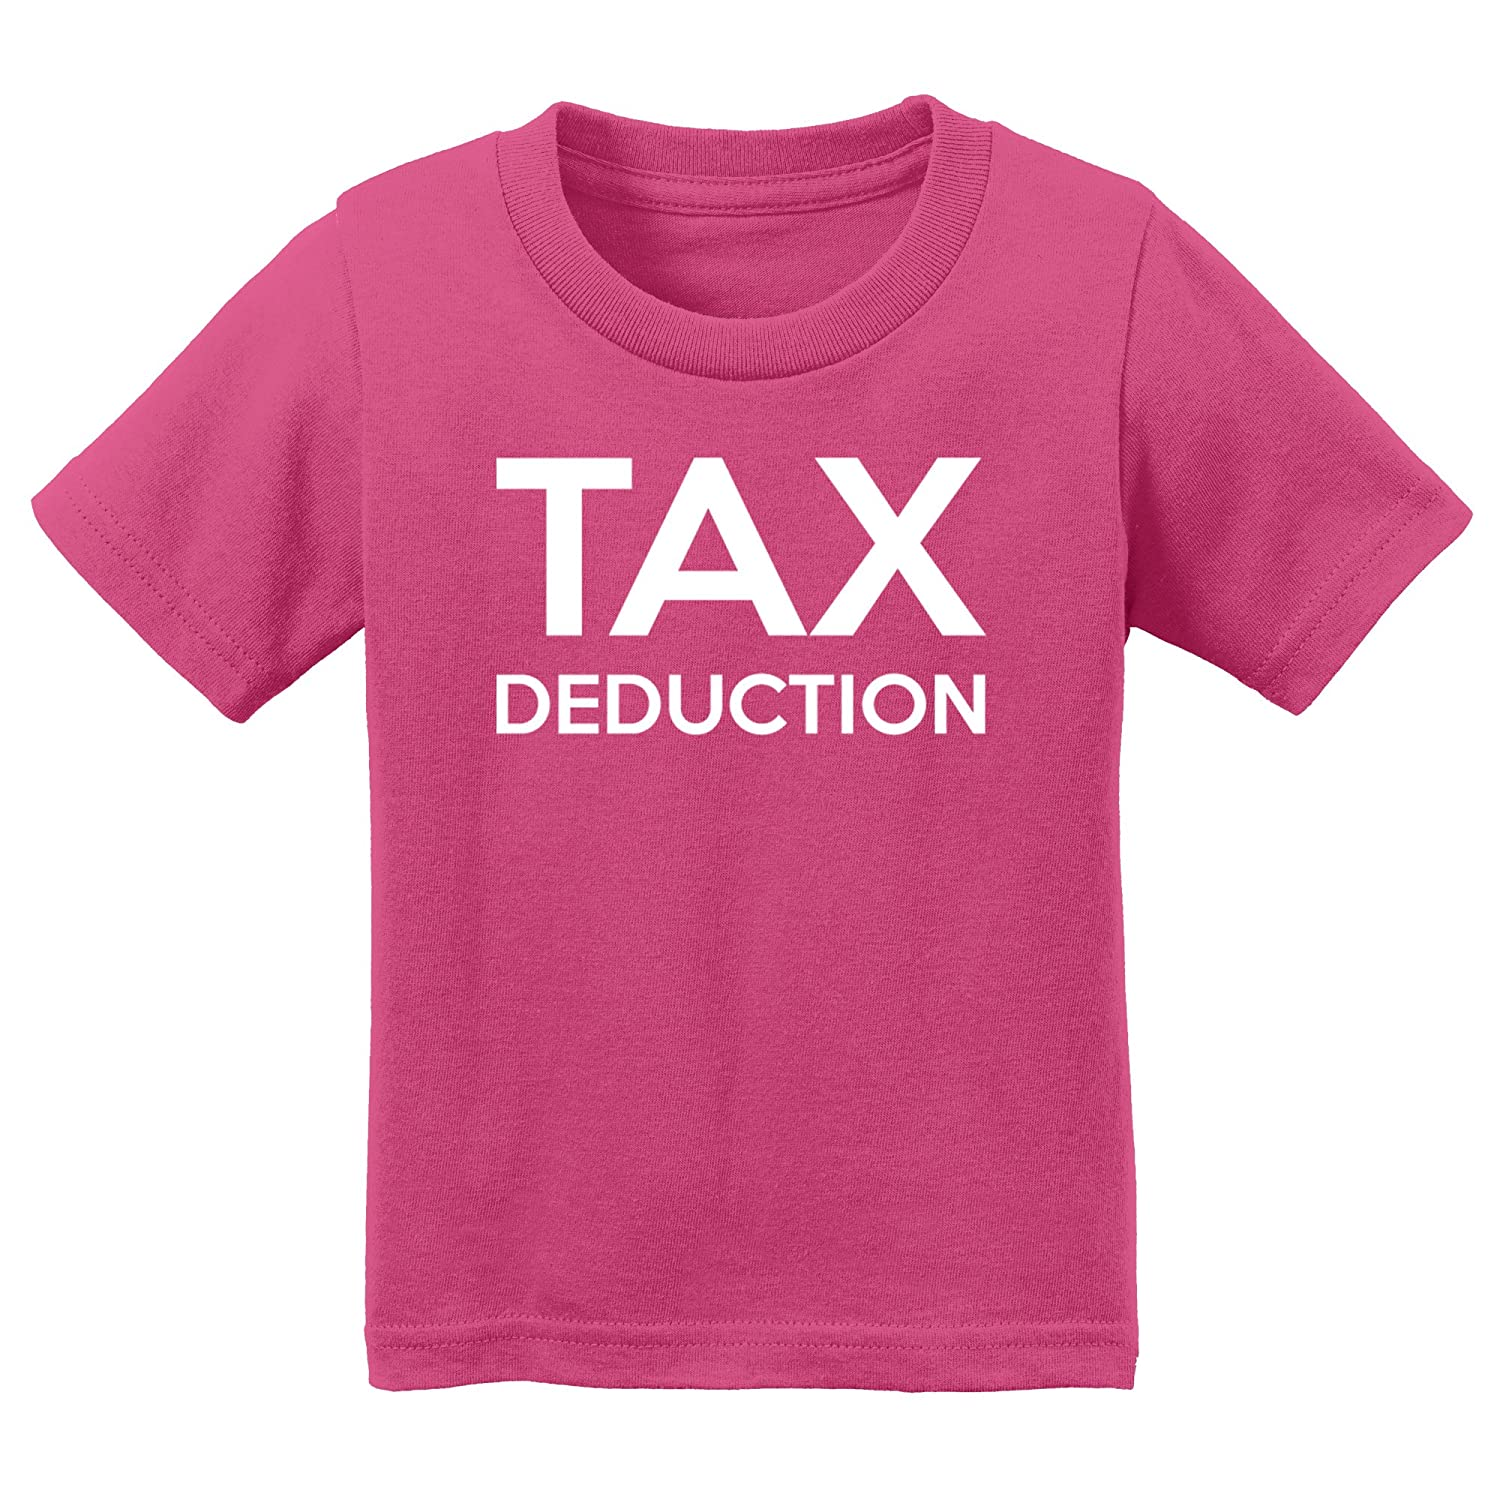 Tax Deduction T-Shirt-Funny Infant /& Toddler Tee